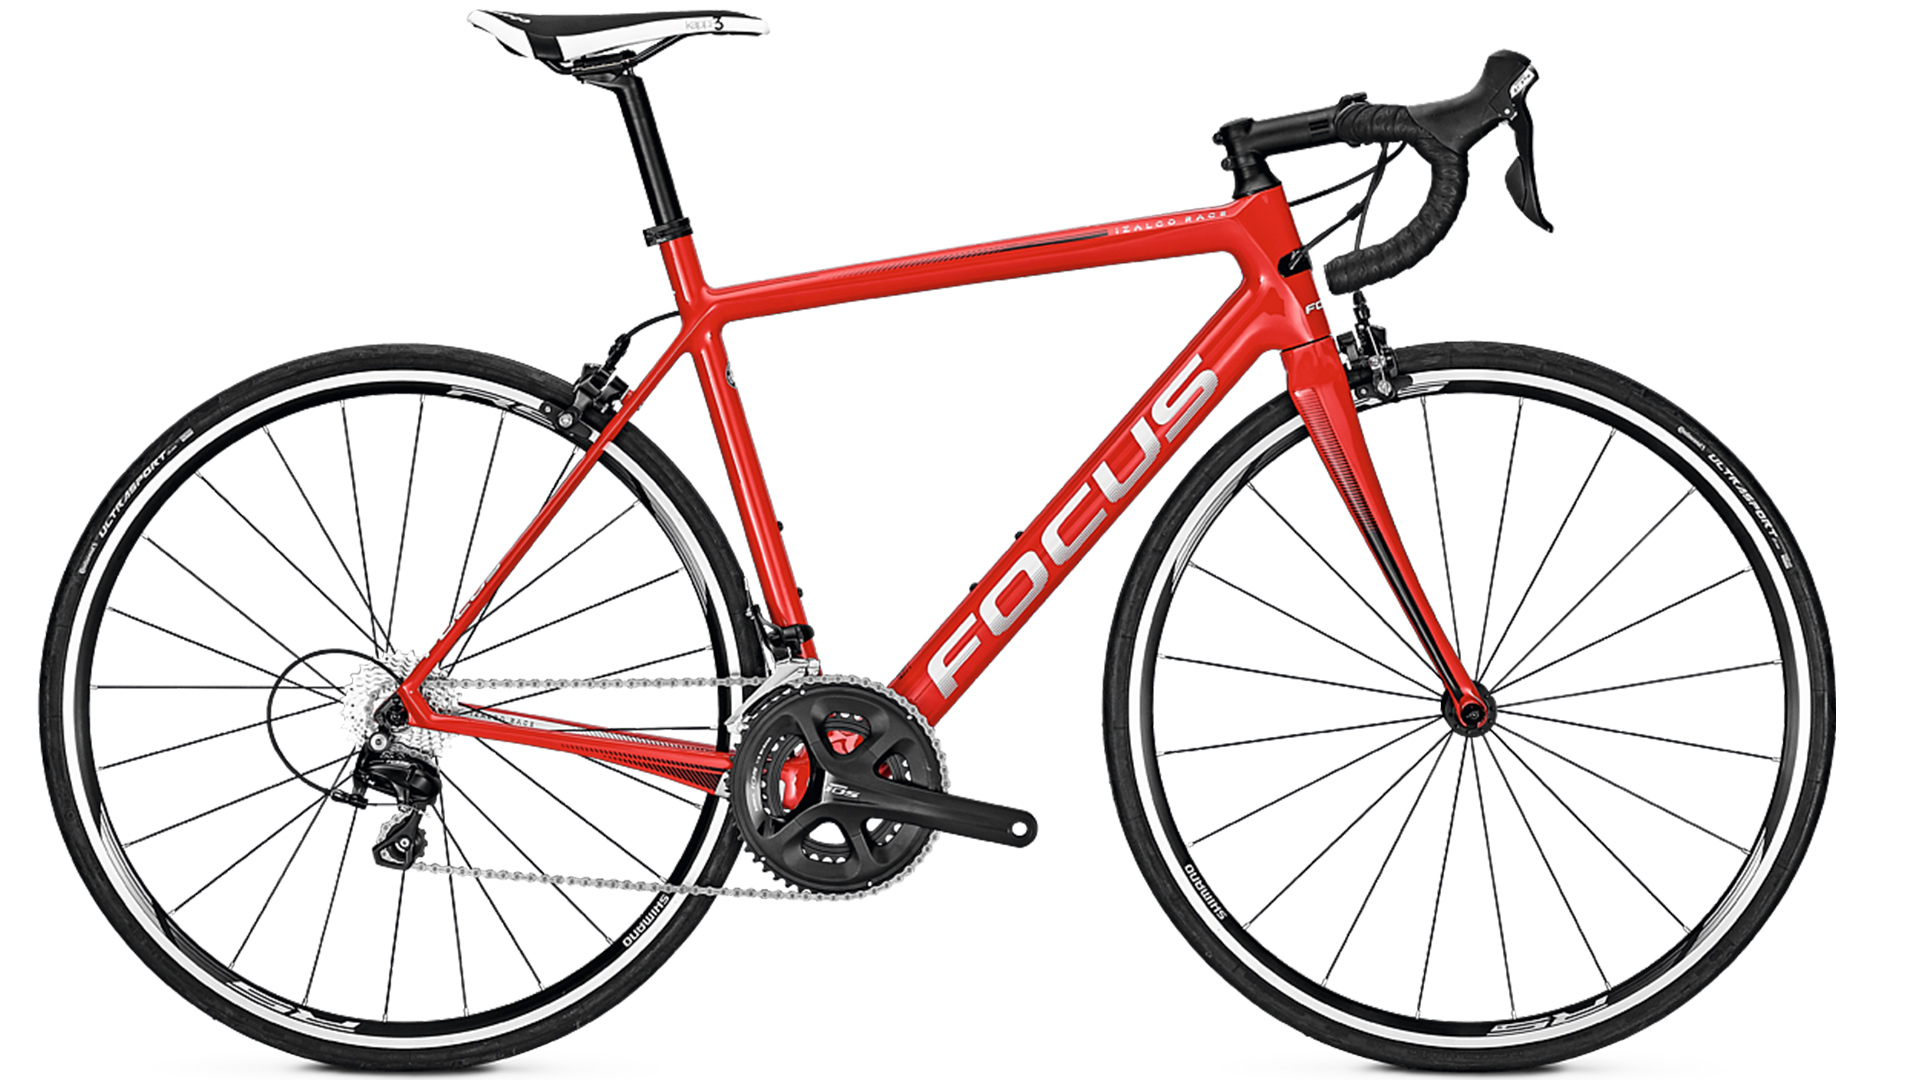 Campana Radsport – Focus Izalco Race